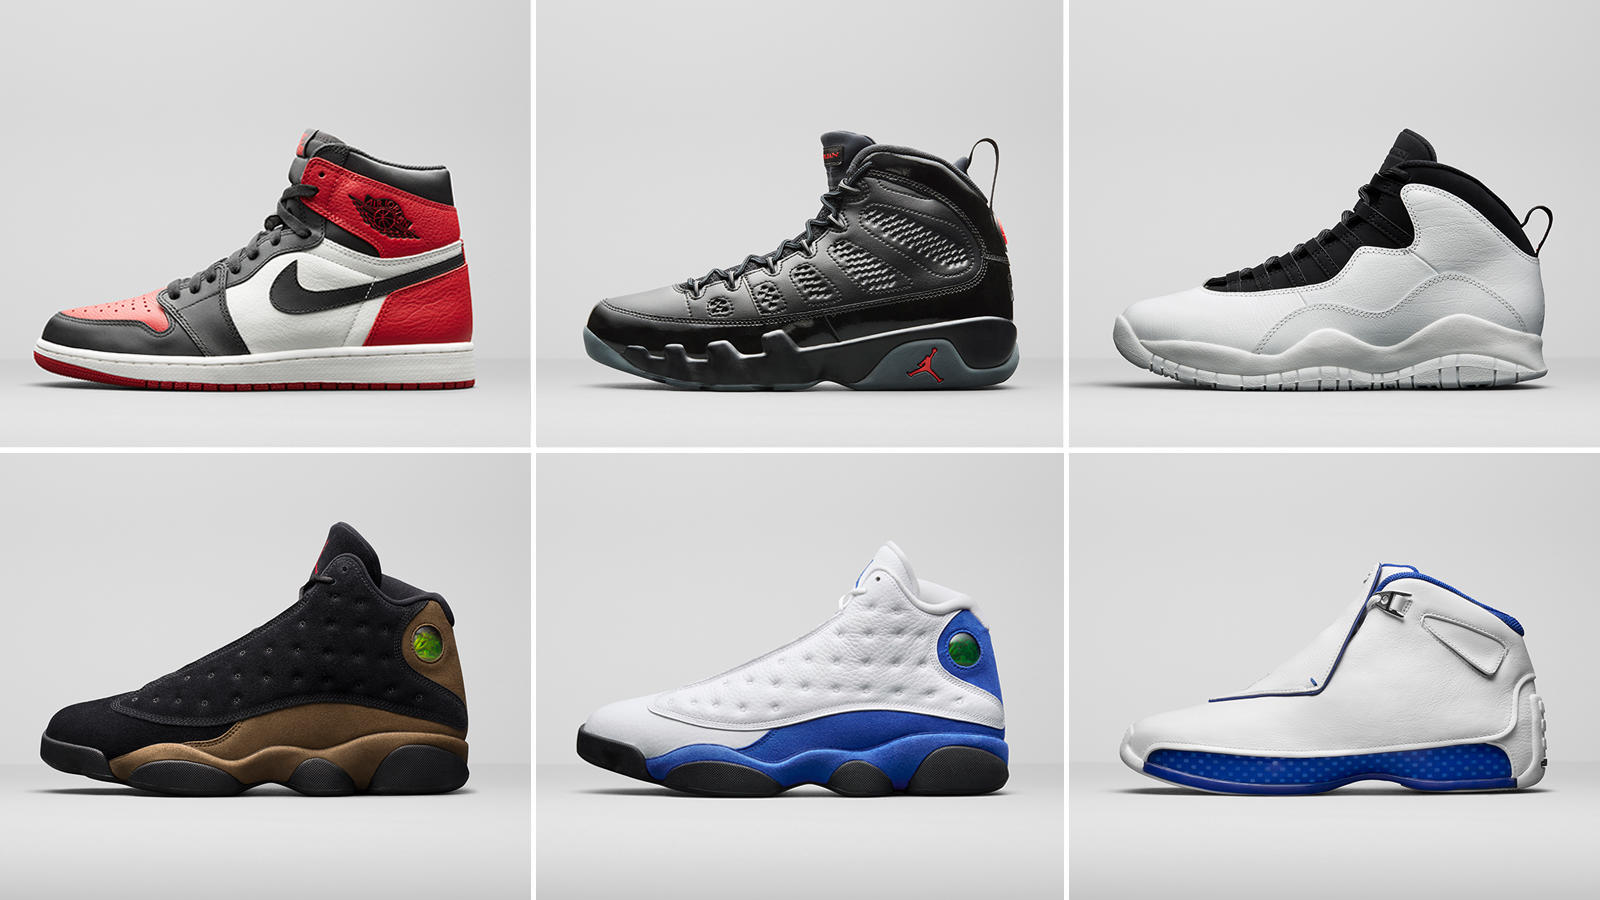 0d9115706c Jordan Brand Unveils 2018 Retro Styles for the Spring Season - Nike News